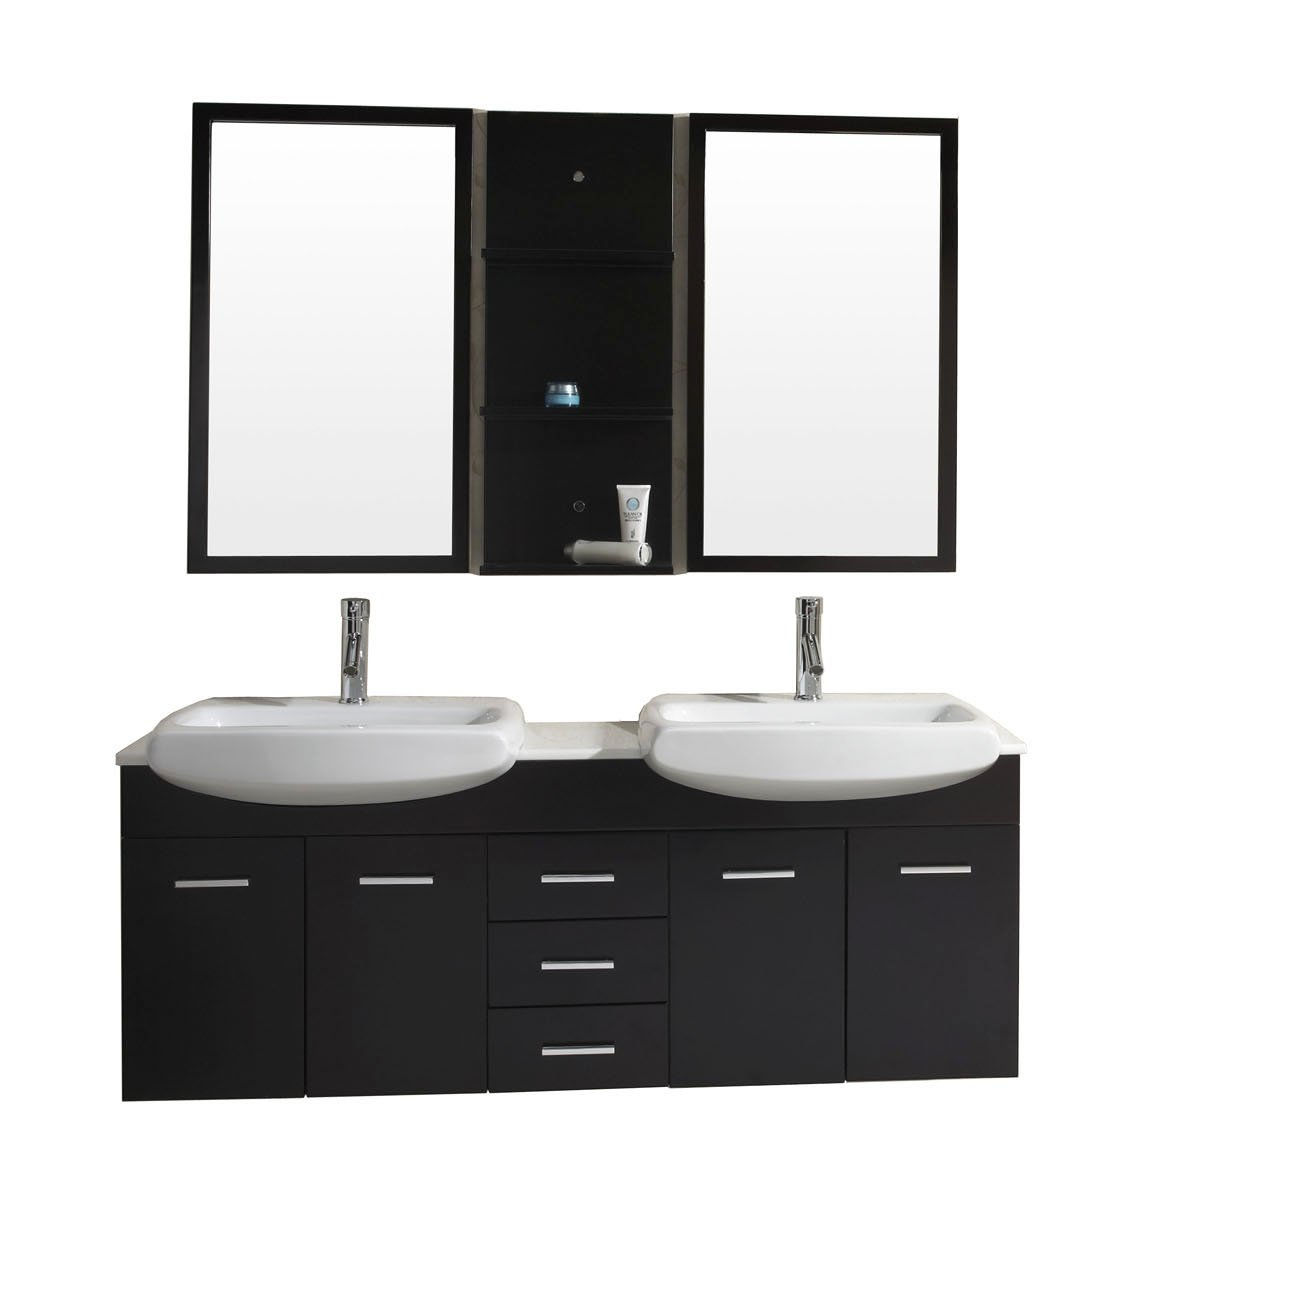 Delightful 59 Inch Double Vanity Part - 14: Virtu USA UM-3059-S-ES Ophelia 59-Inch Wall-Mounted Double Sink Bathroom  Vanity Set With White Stone Countertop, Espresso Finish - Girls Base Layer  ...